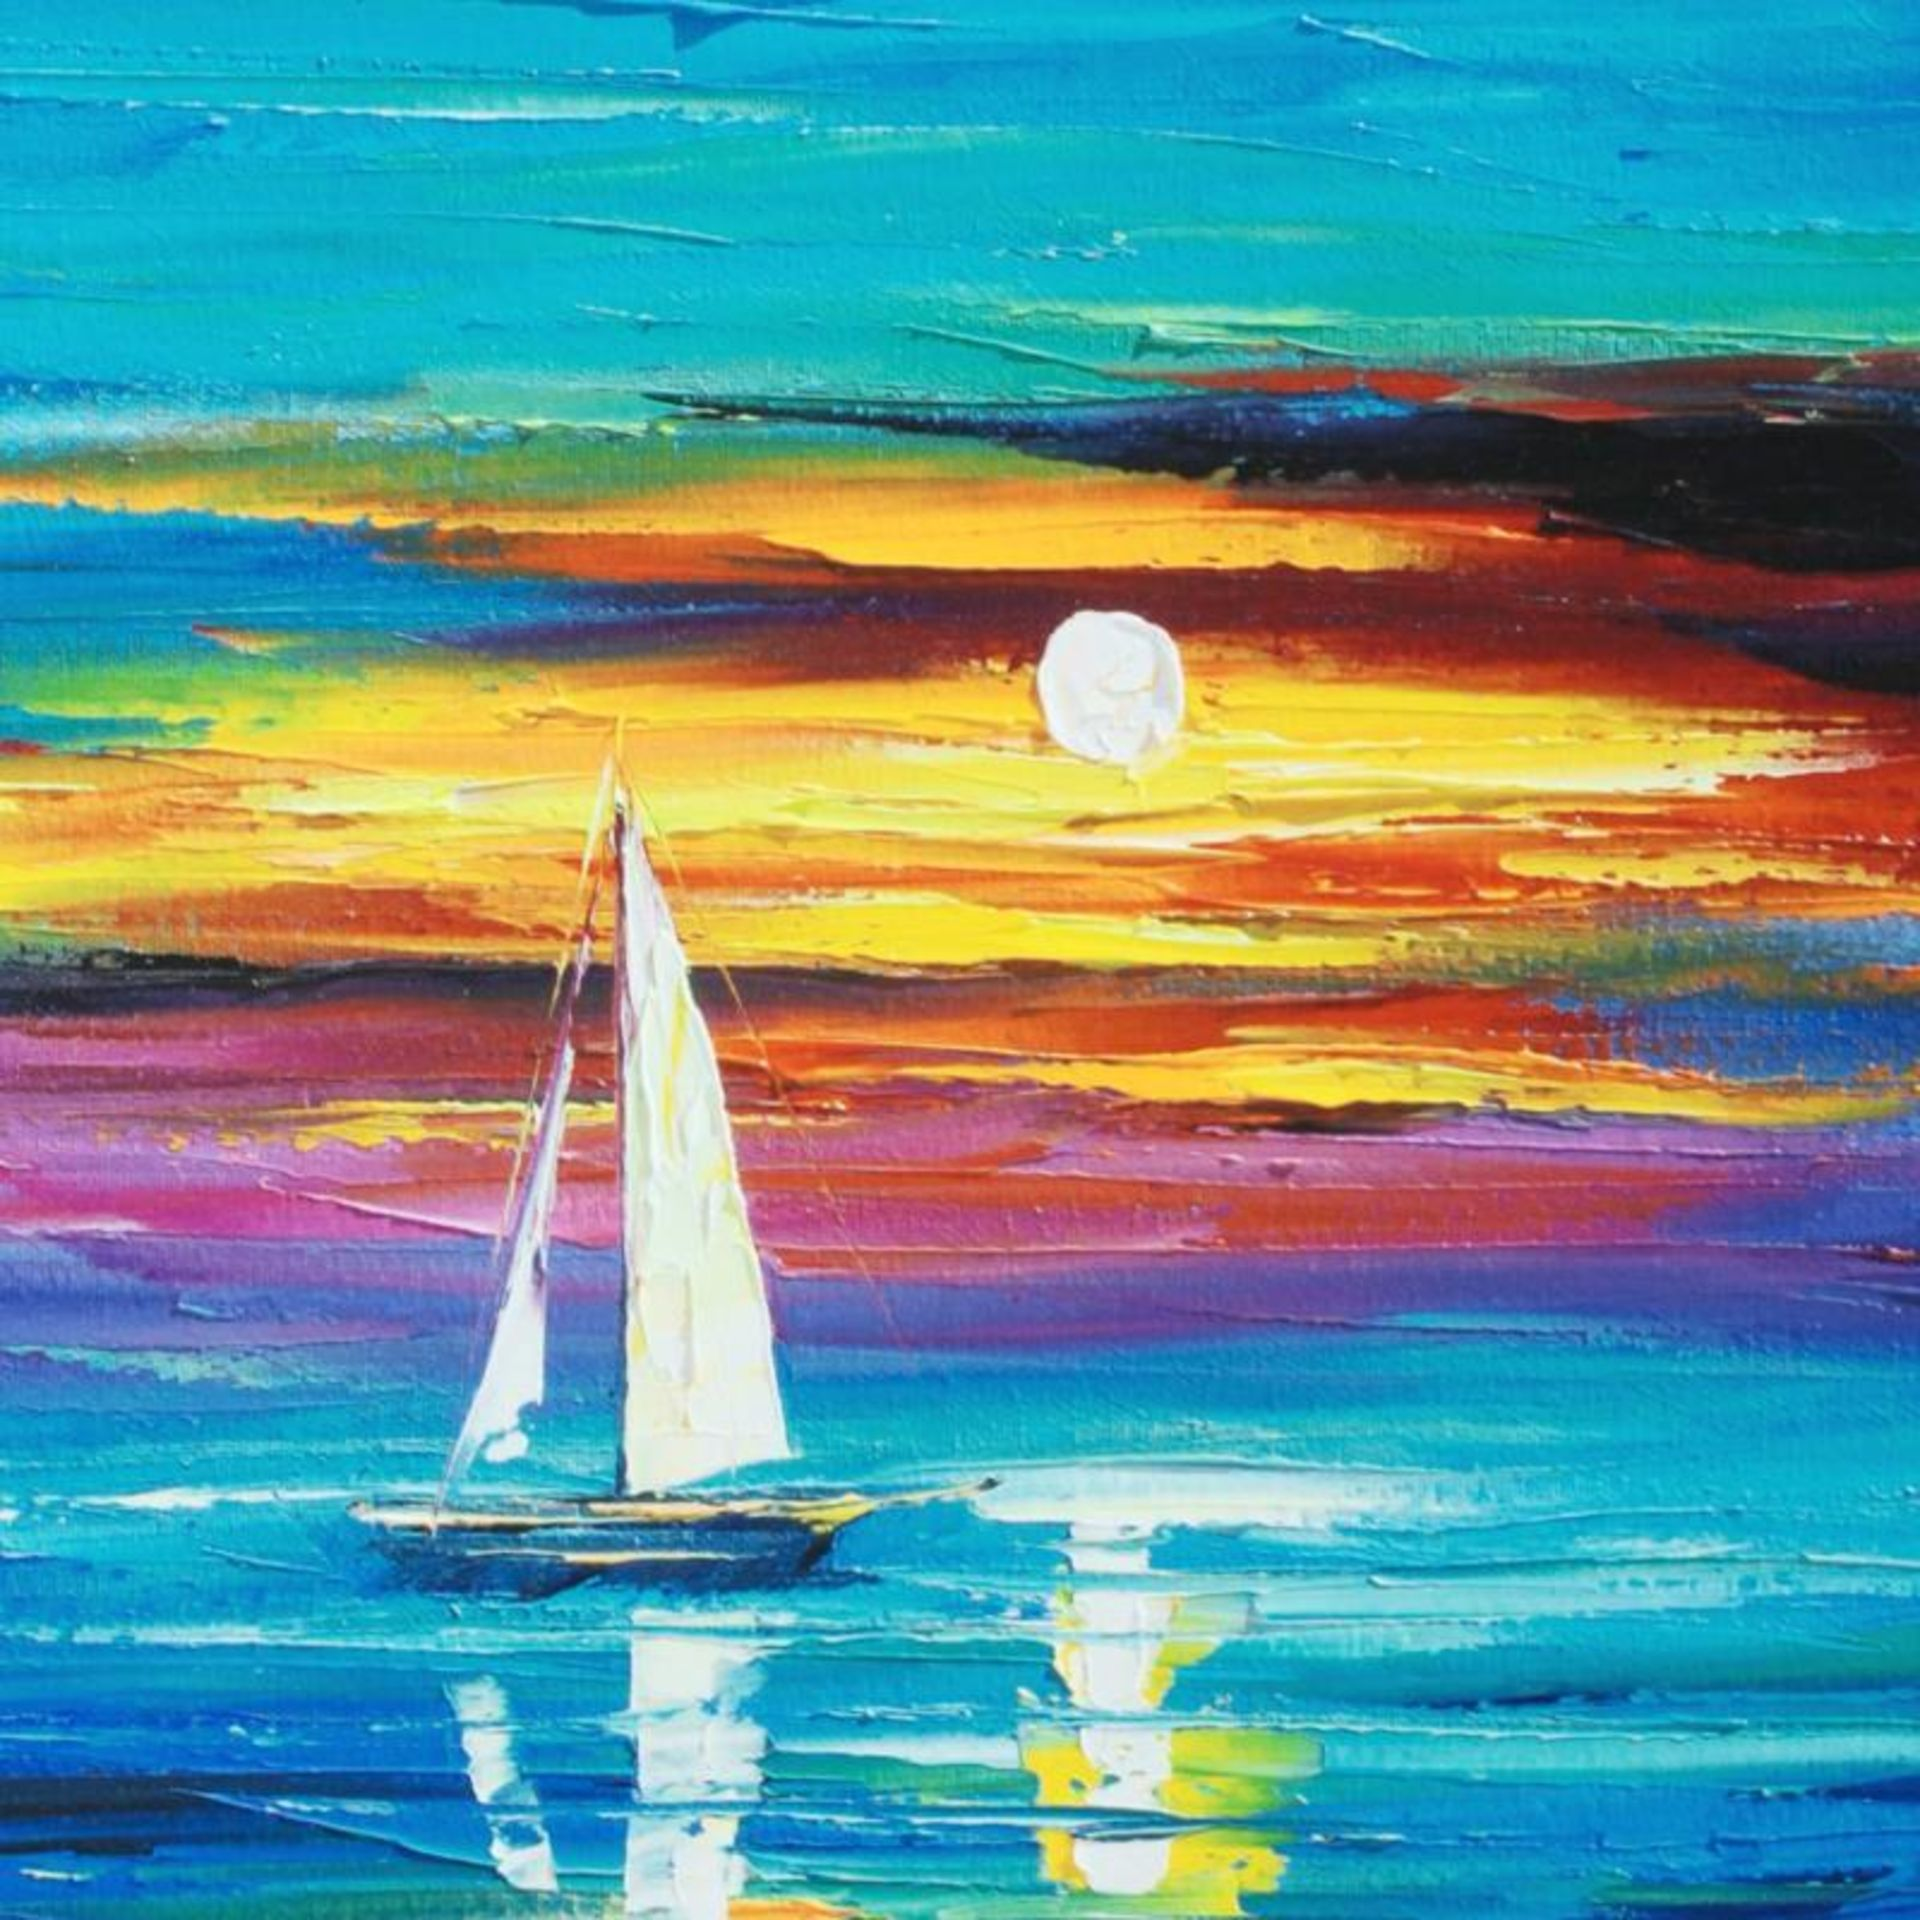 """Leonid Afremov (1955-2019) """"Reflection"""" Limited Edition Giclee on Canvas, Number - Image 2 of 3"""